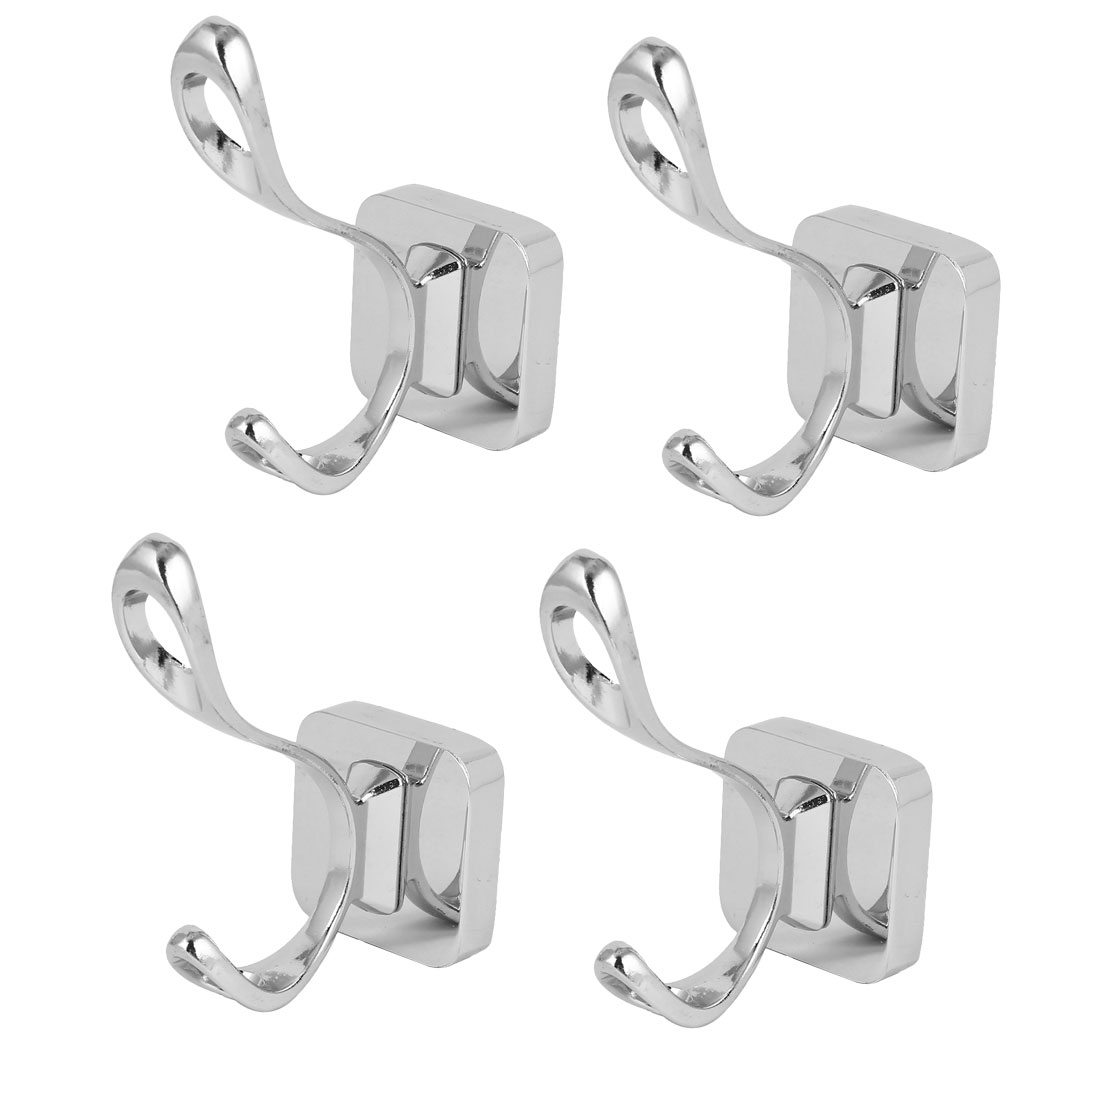 Unique Bargains Home Hotel Clothes Handbag Towel Wall Mount Hanger Double Hook 4pcs